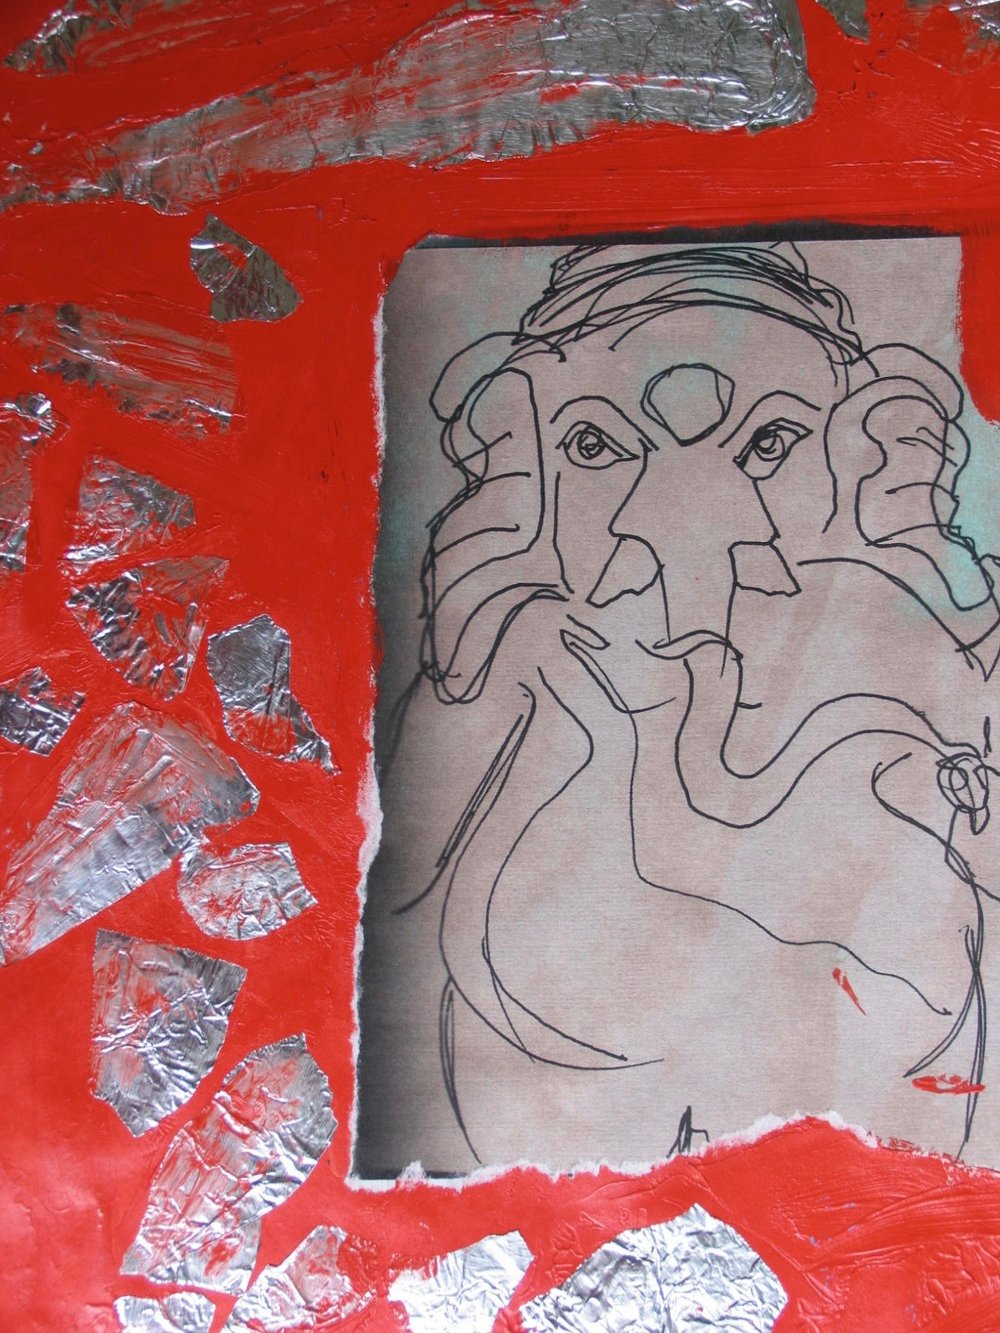 Sri Ganeshji Drawing/Collage